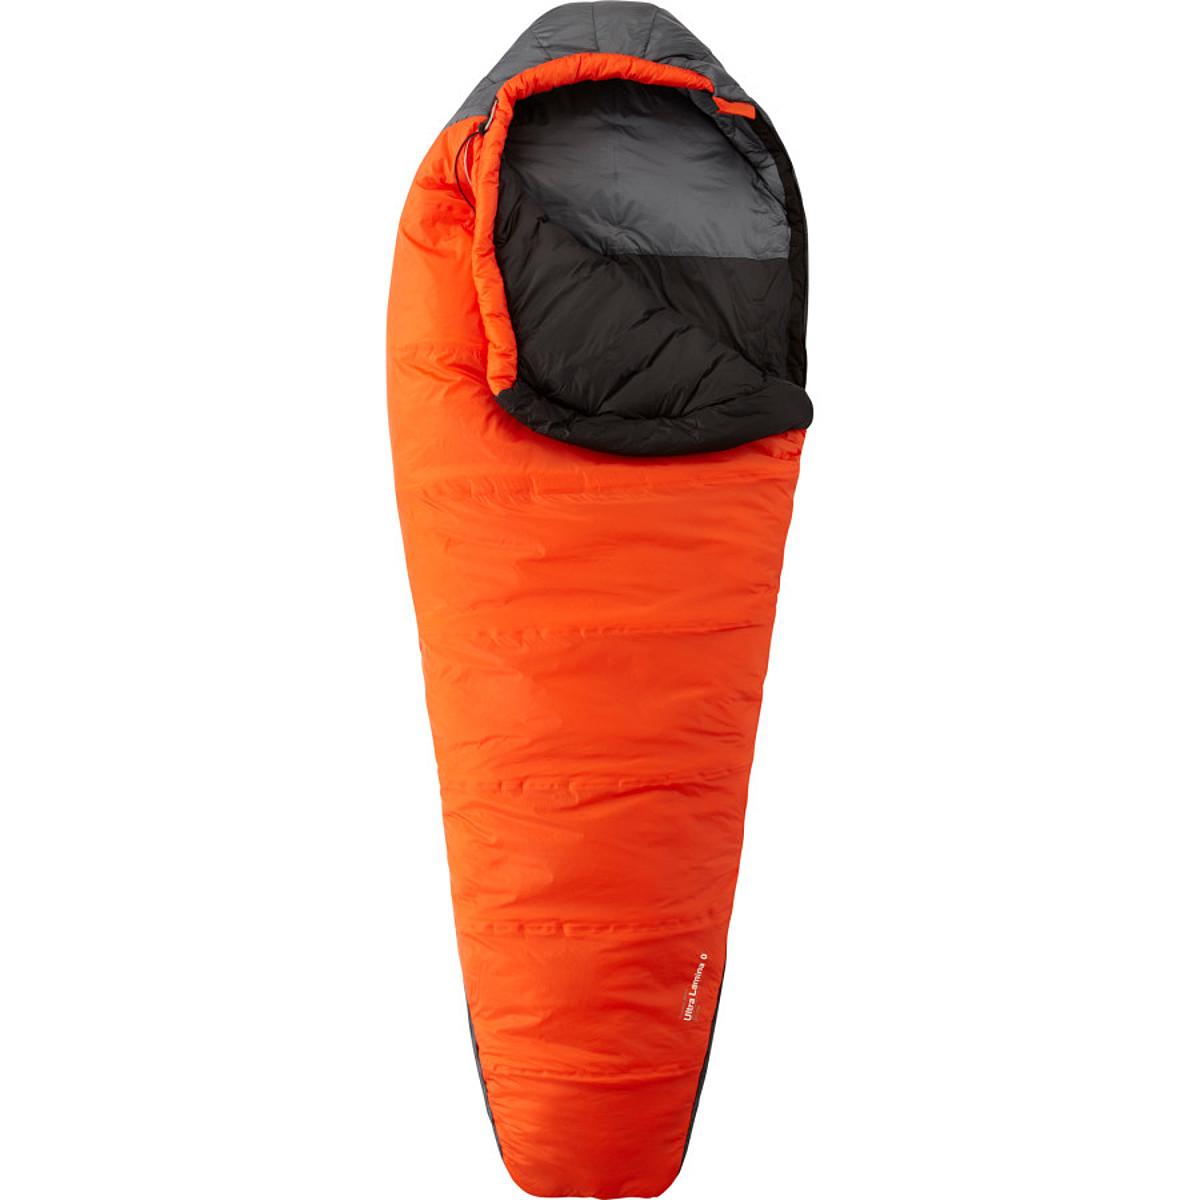 photo: Mountain Hardwear UltraLamina 0° 3-season synthetic sleeping bag